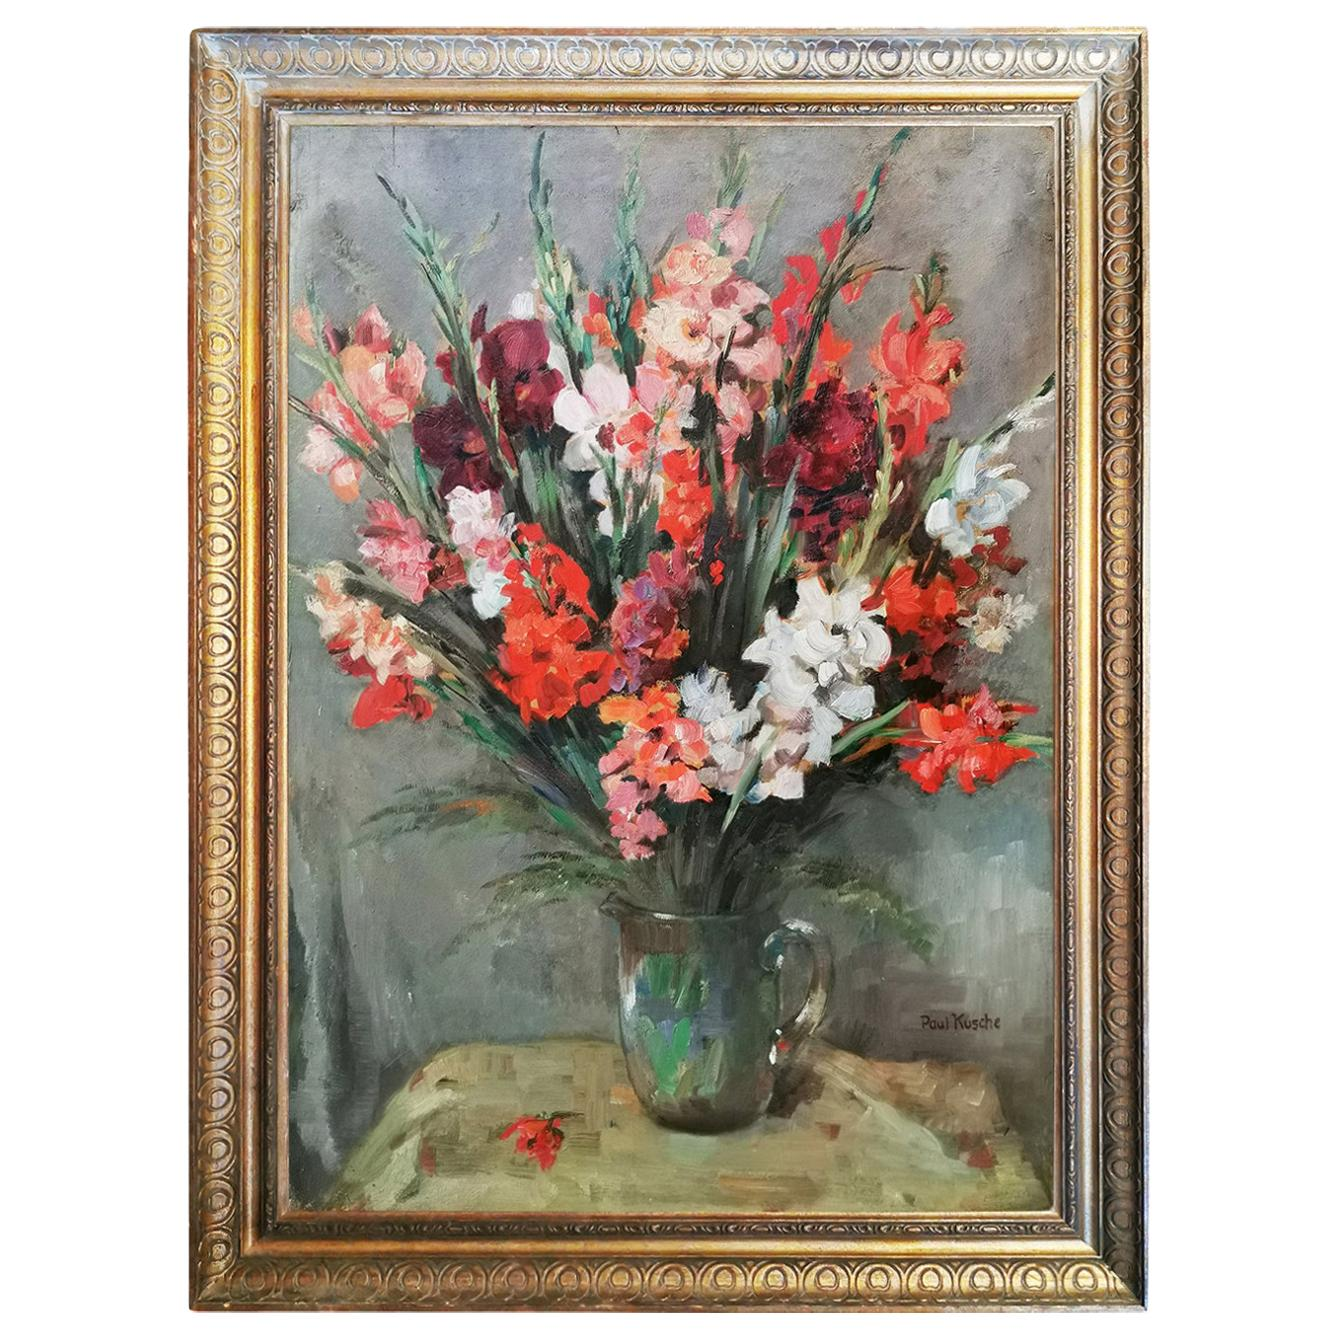 Still life Oil Painting, Gladiolus by Paul Kusche, 1920